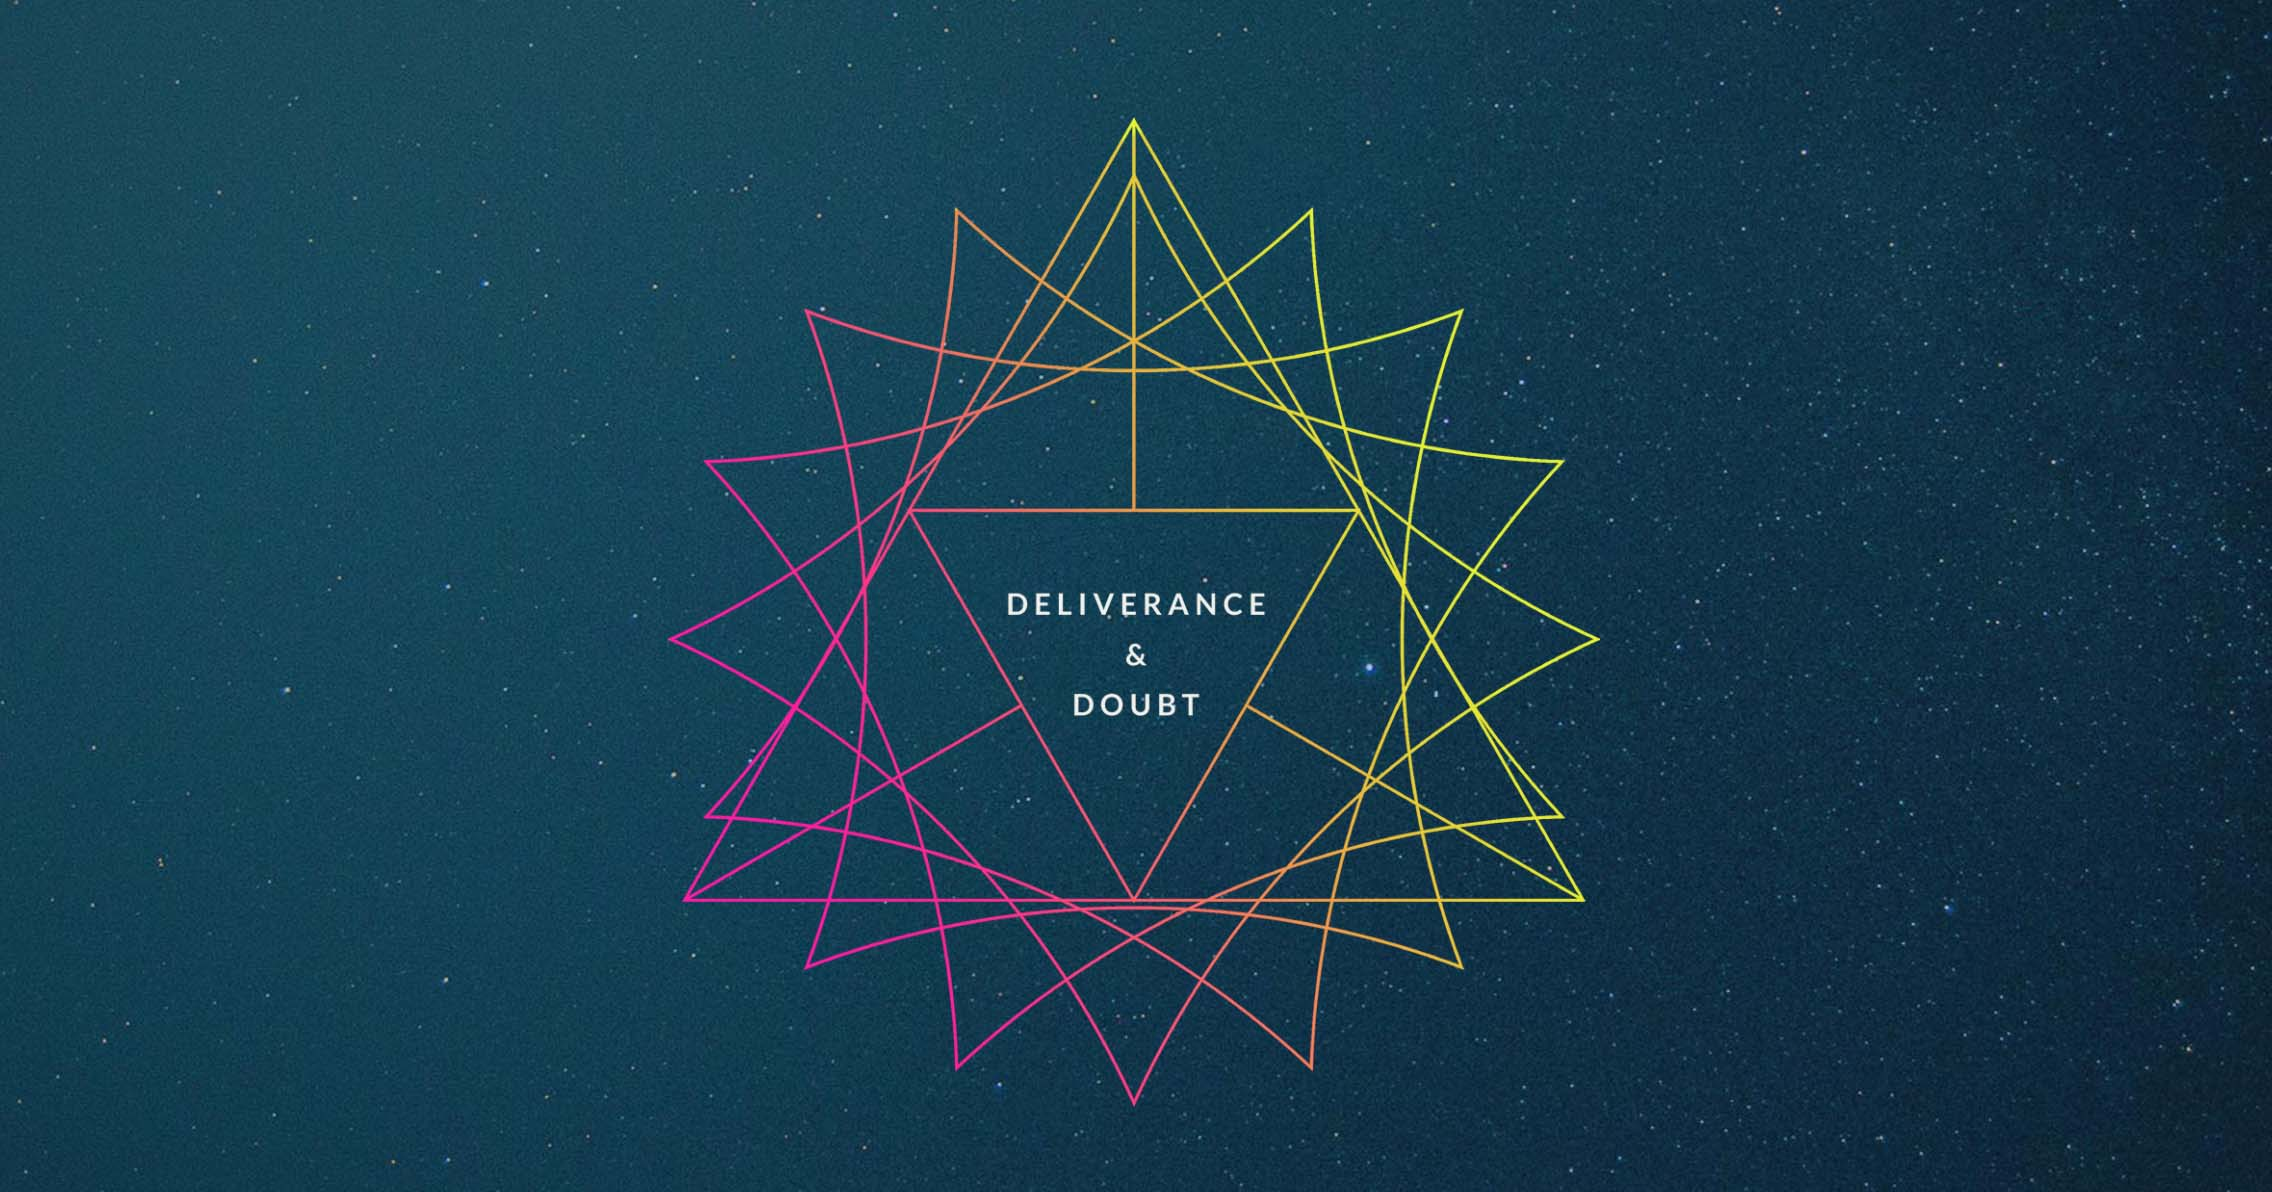 South Of Royal Deliverance Doubt